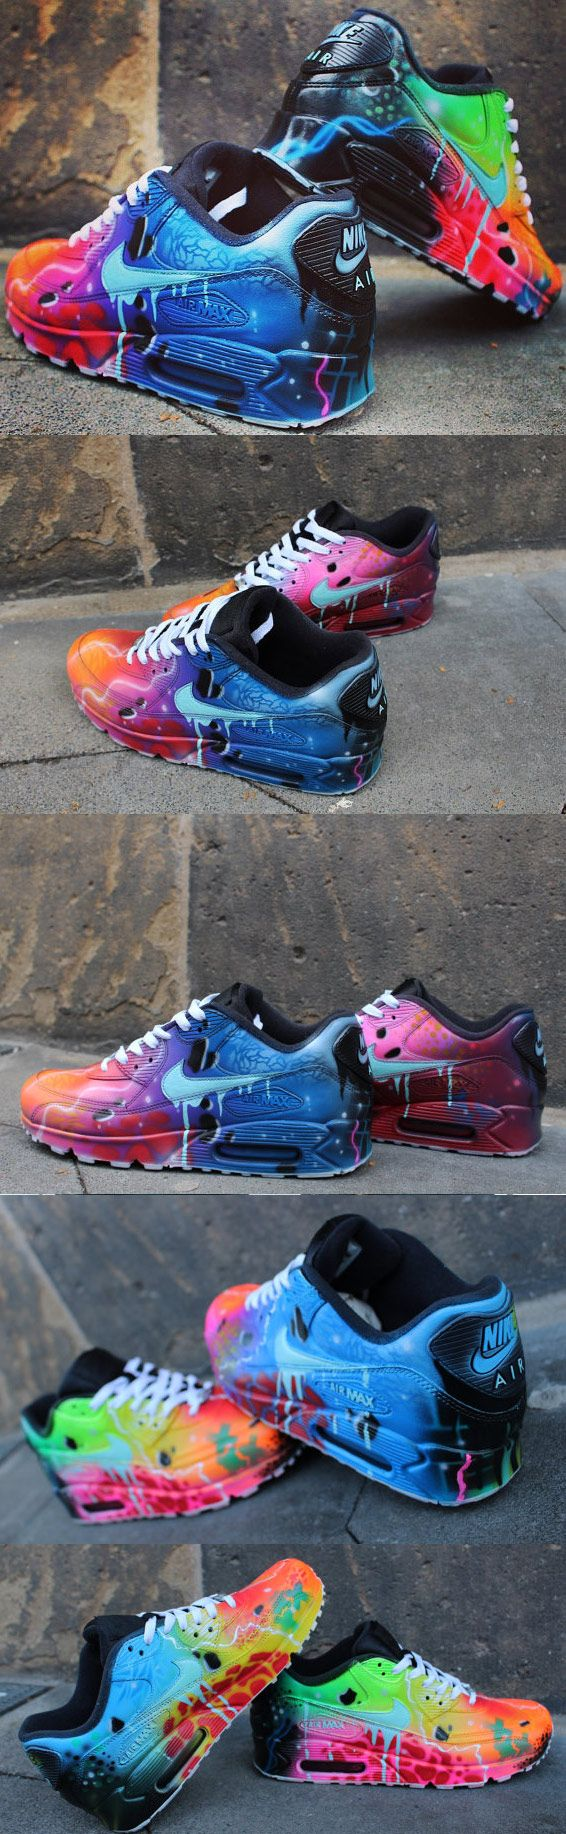 sale retailer 4a646 d79d0 ... clearance nike air max 90 blue galaxy style painted custom shoes  sneaker airbrush kicks rare schuhe